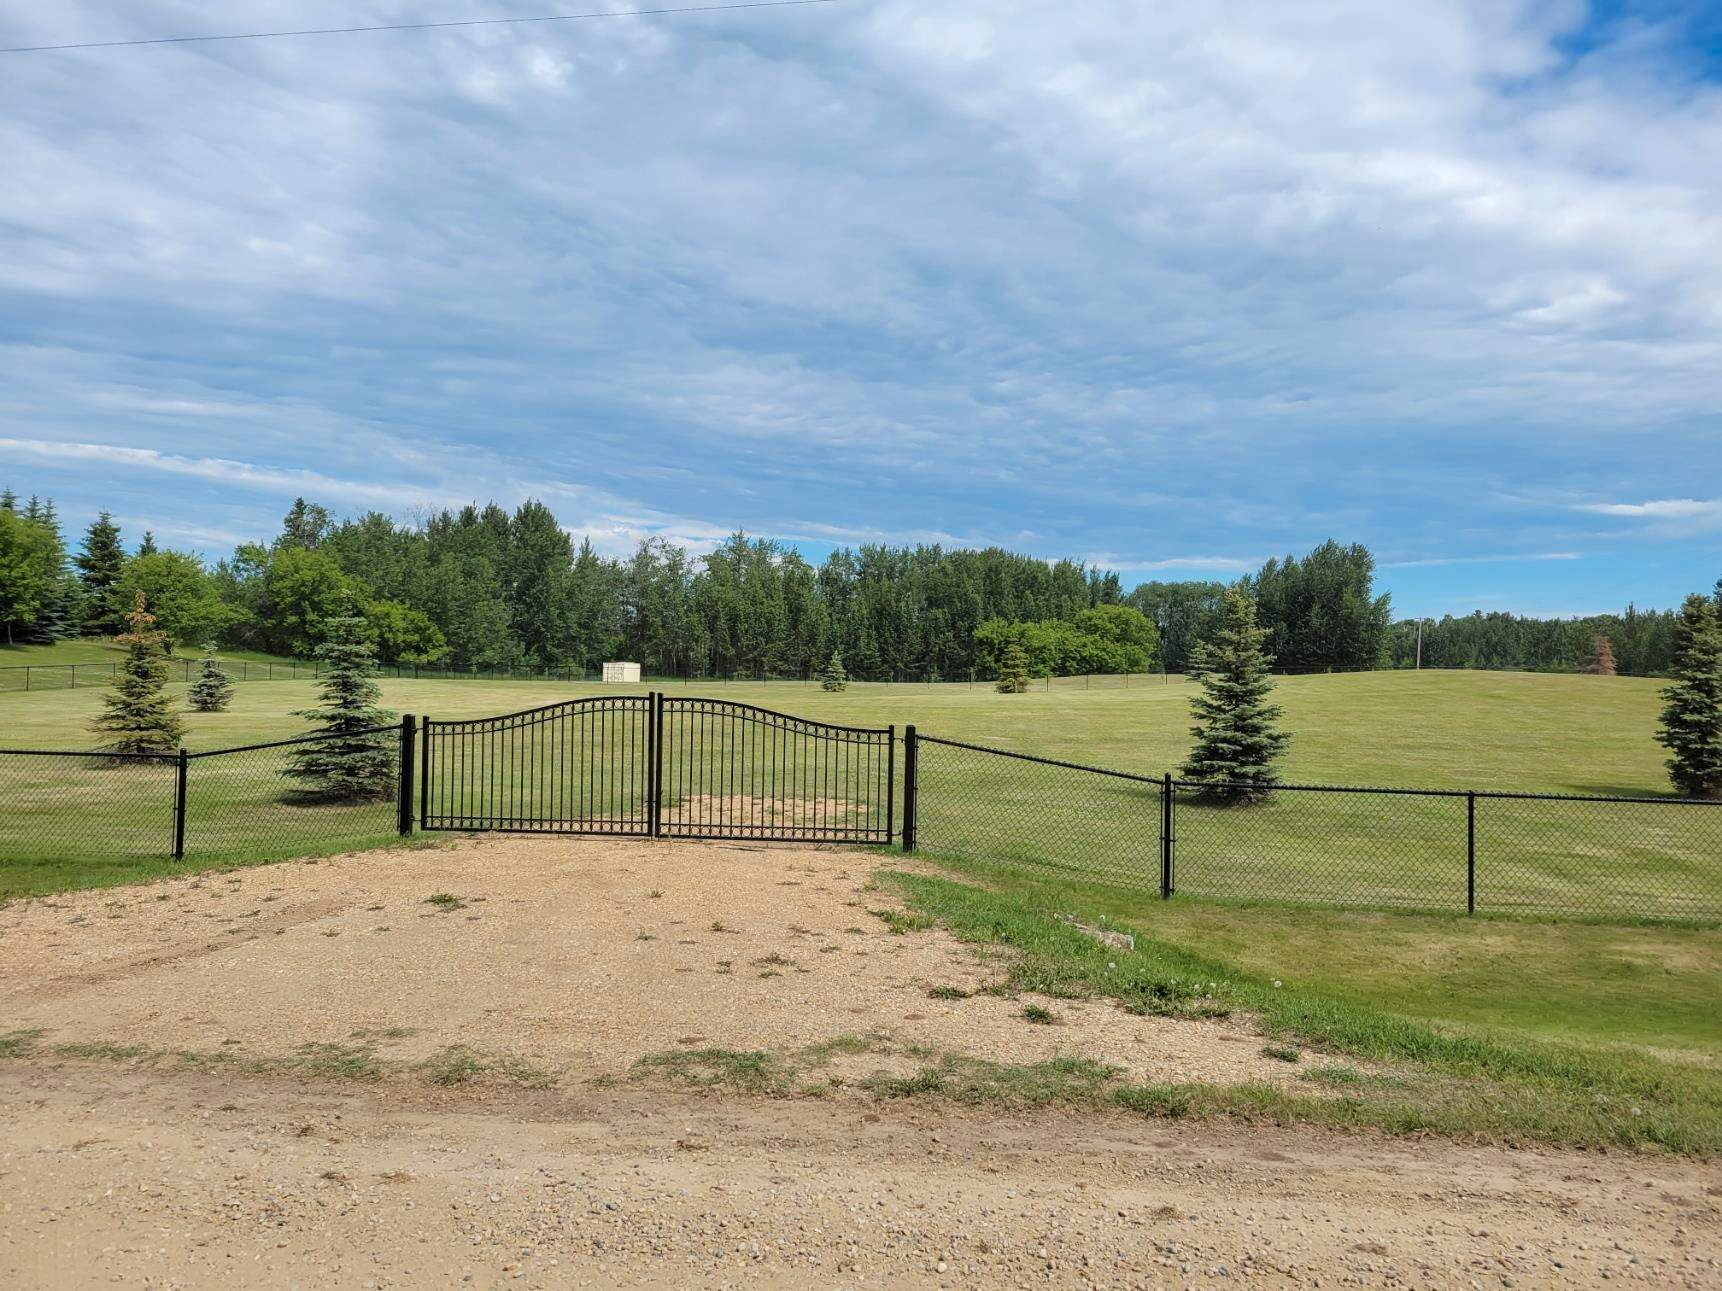 Main Photo: 1A 51310 RGE RD 261: Rural Parkland County Rural Land/Vacant Lot for sale : MLS®# E4251082